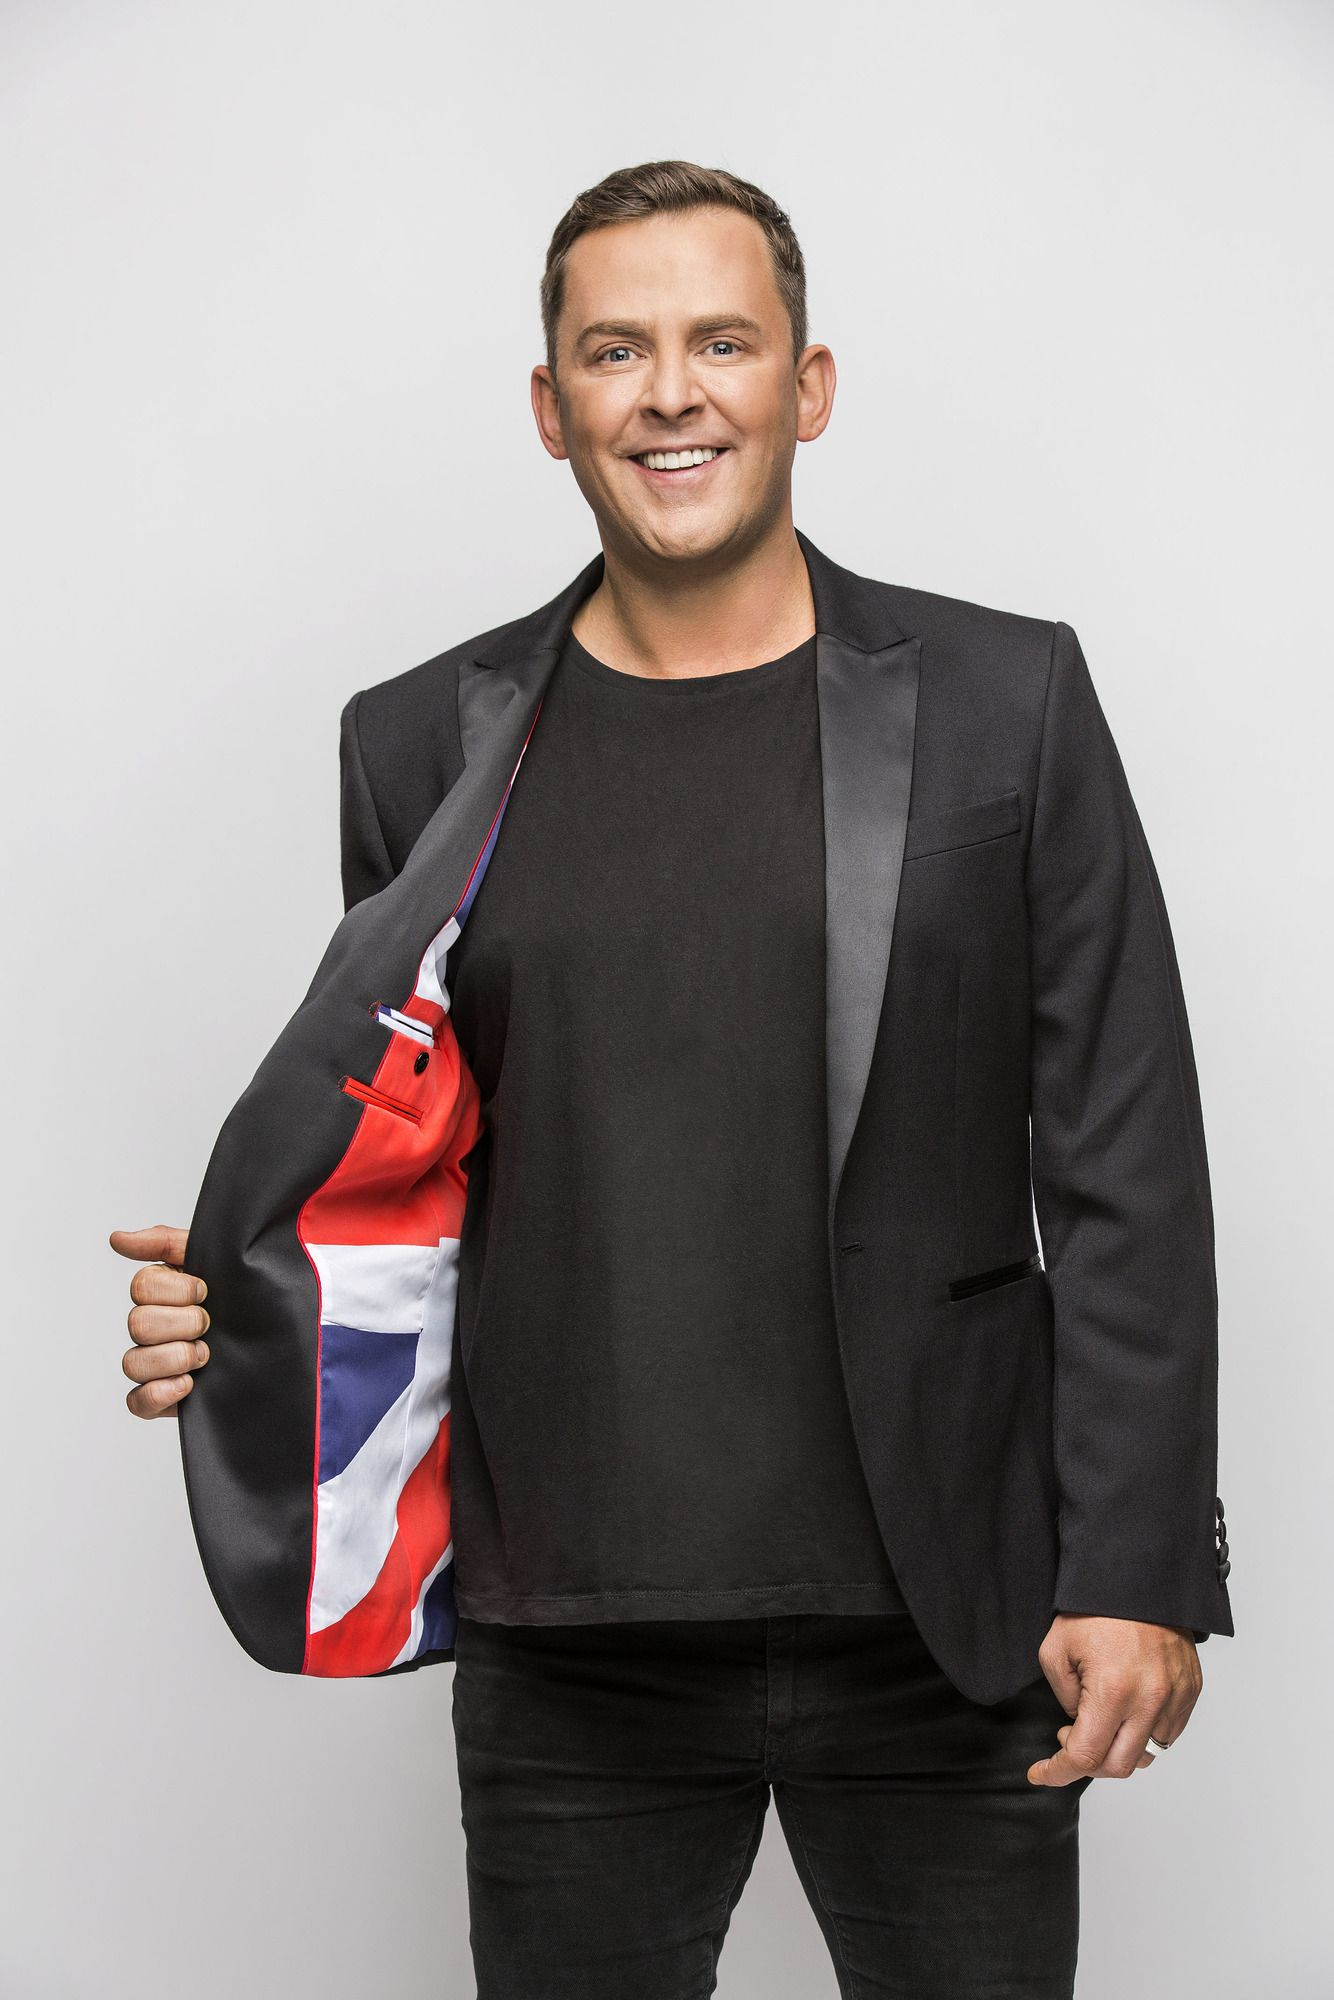 Scott Mills explains the tiny Eurovision rule change that may help out the UK this year